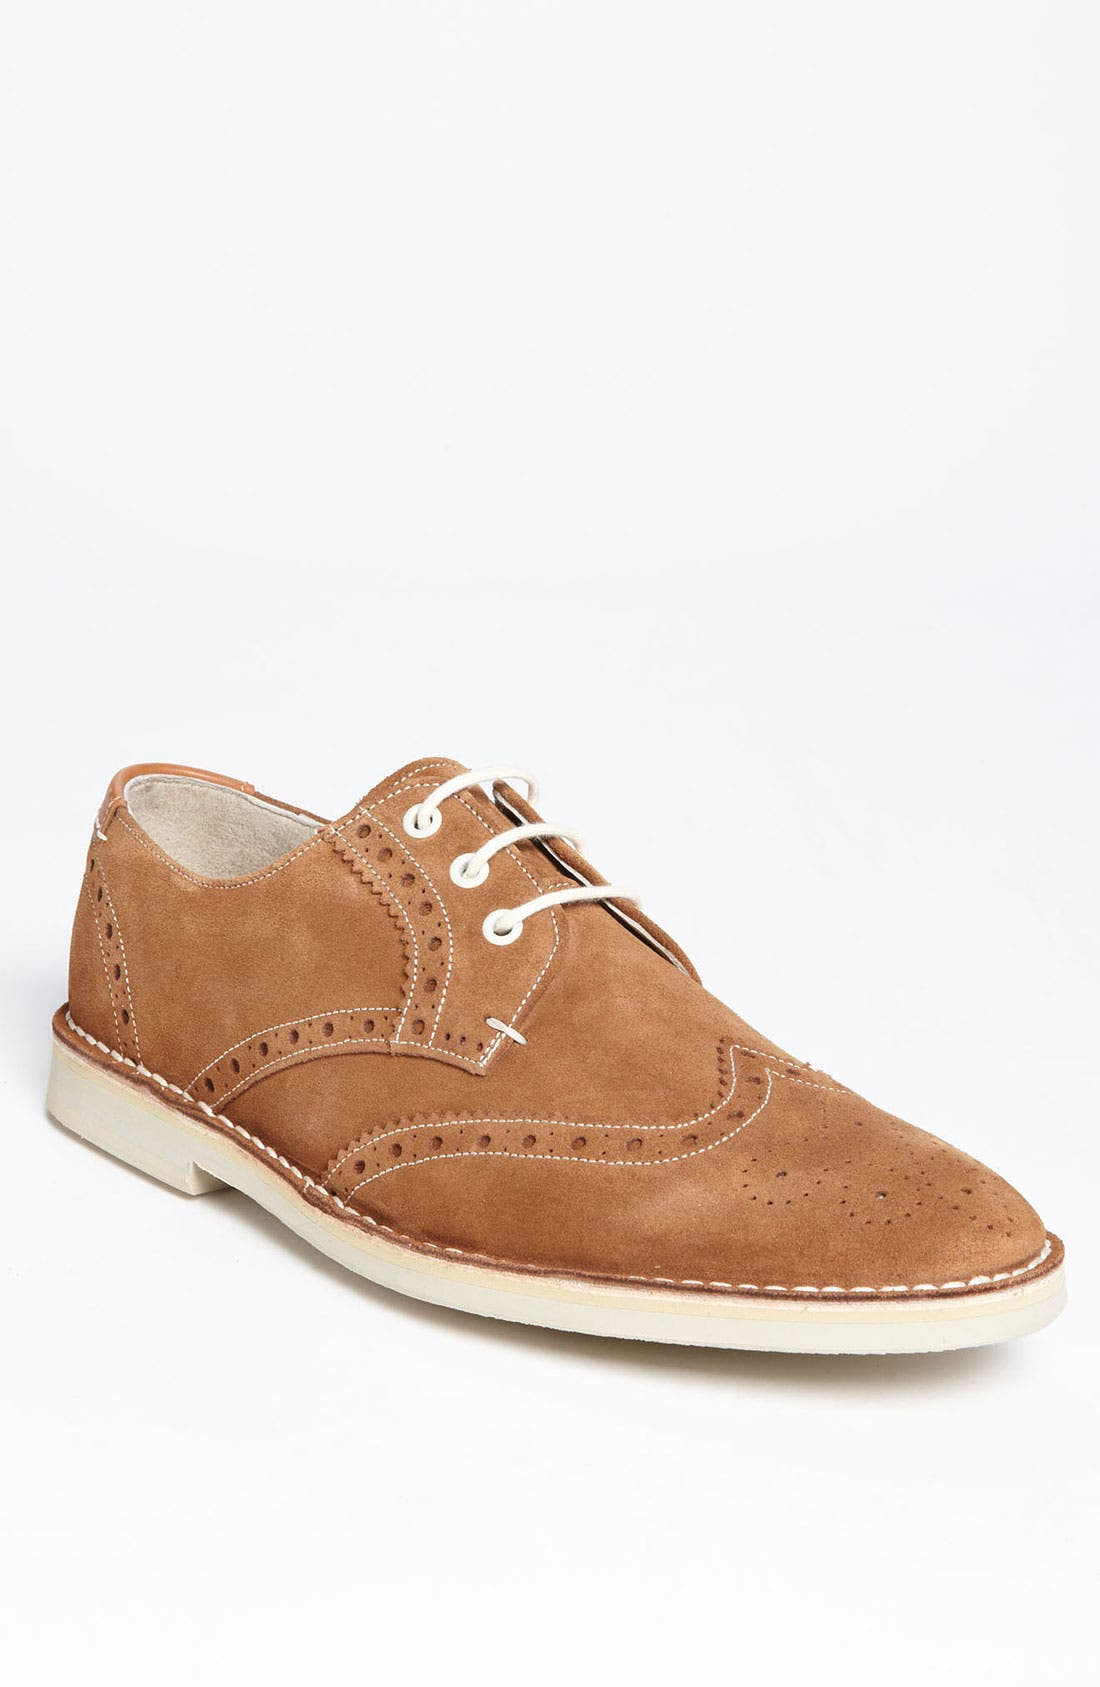 Alternate Image 1 Selected - Ted Baker London 'Jamfro' Wingtip